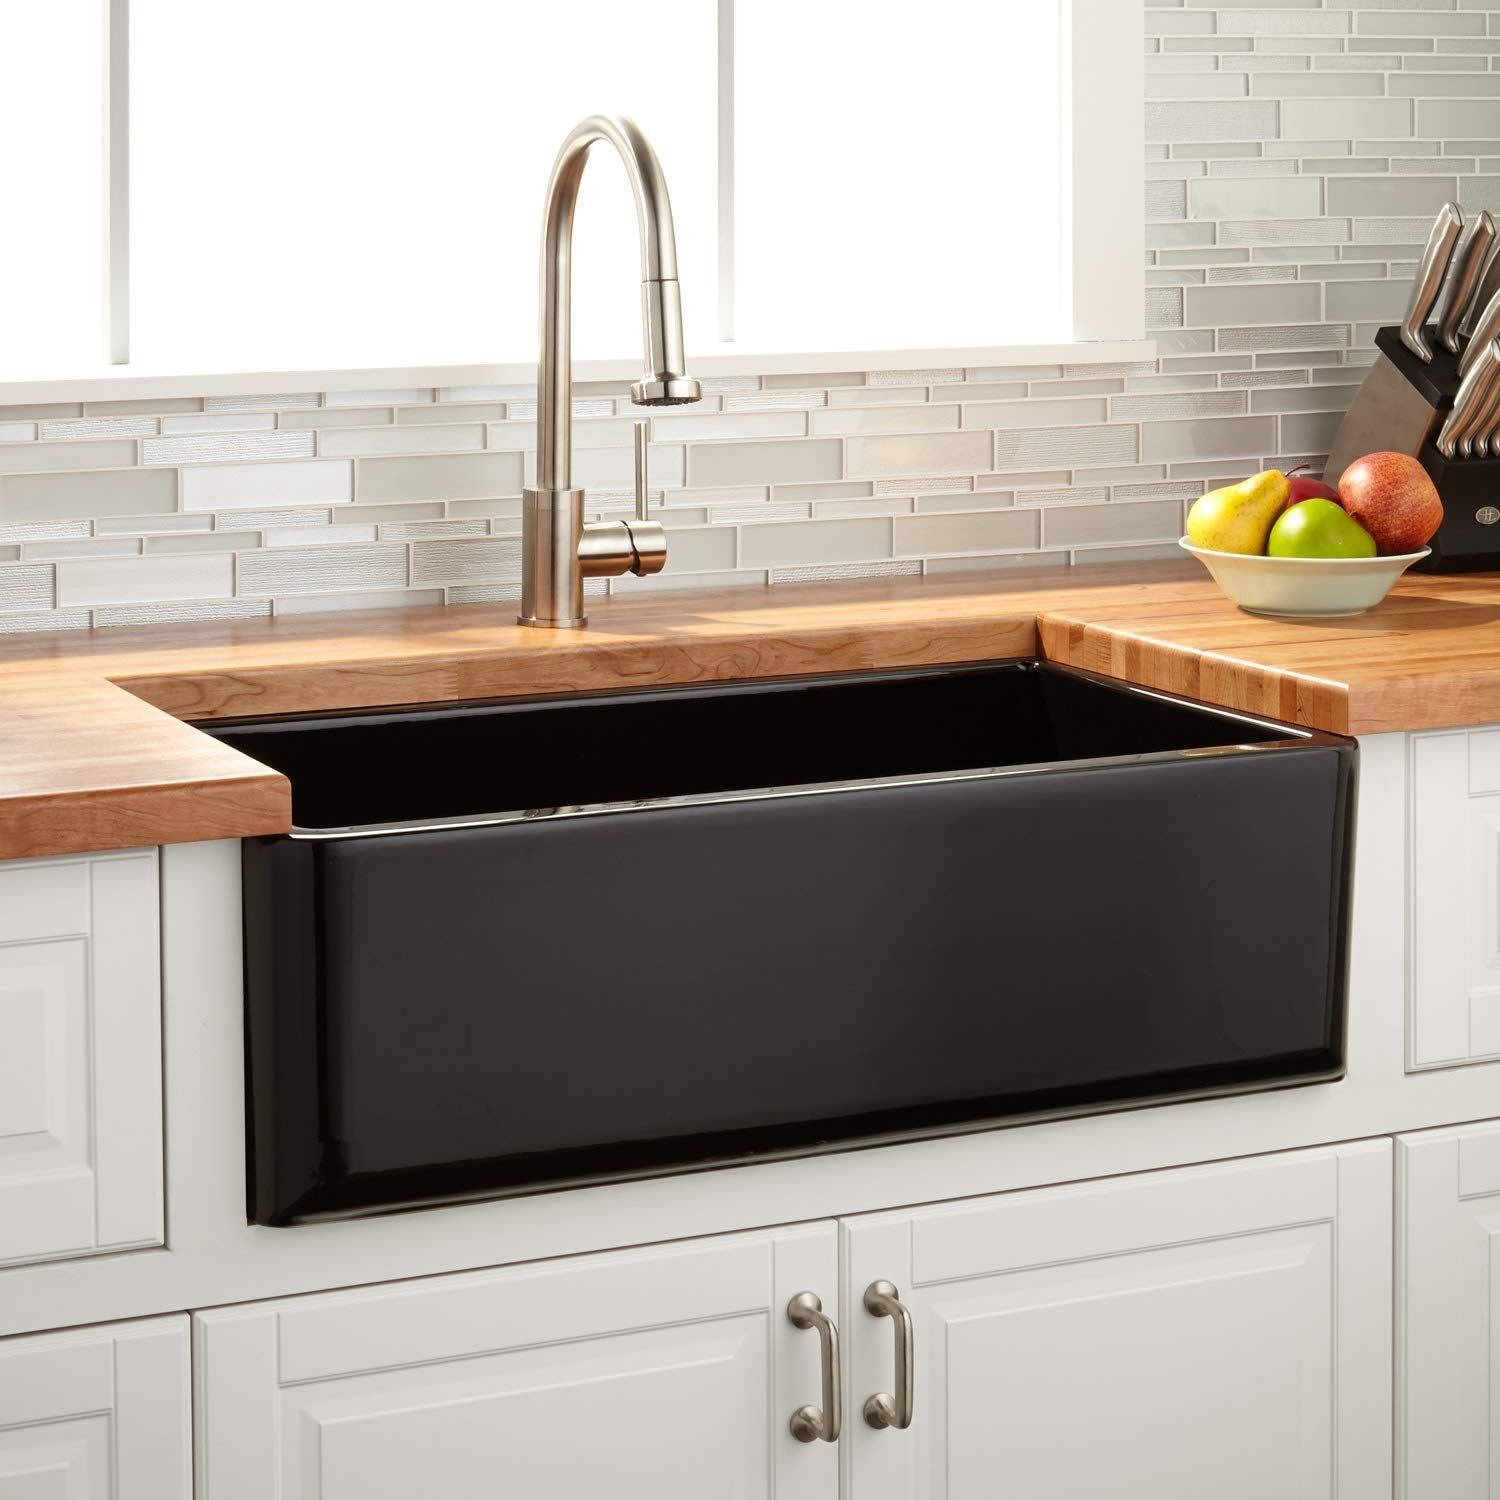 Best Black Farmhouse Sinks We Love Black Apron Front Sinks And